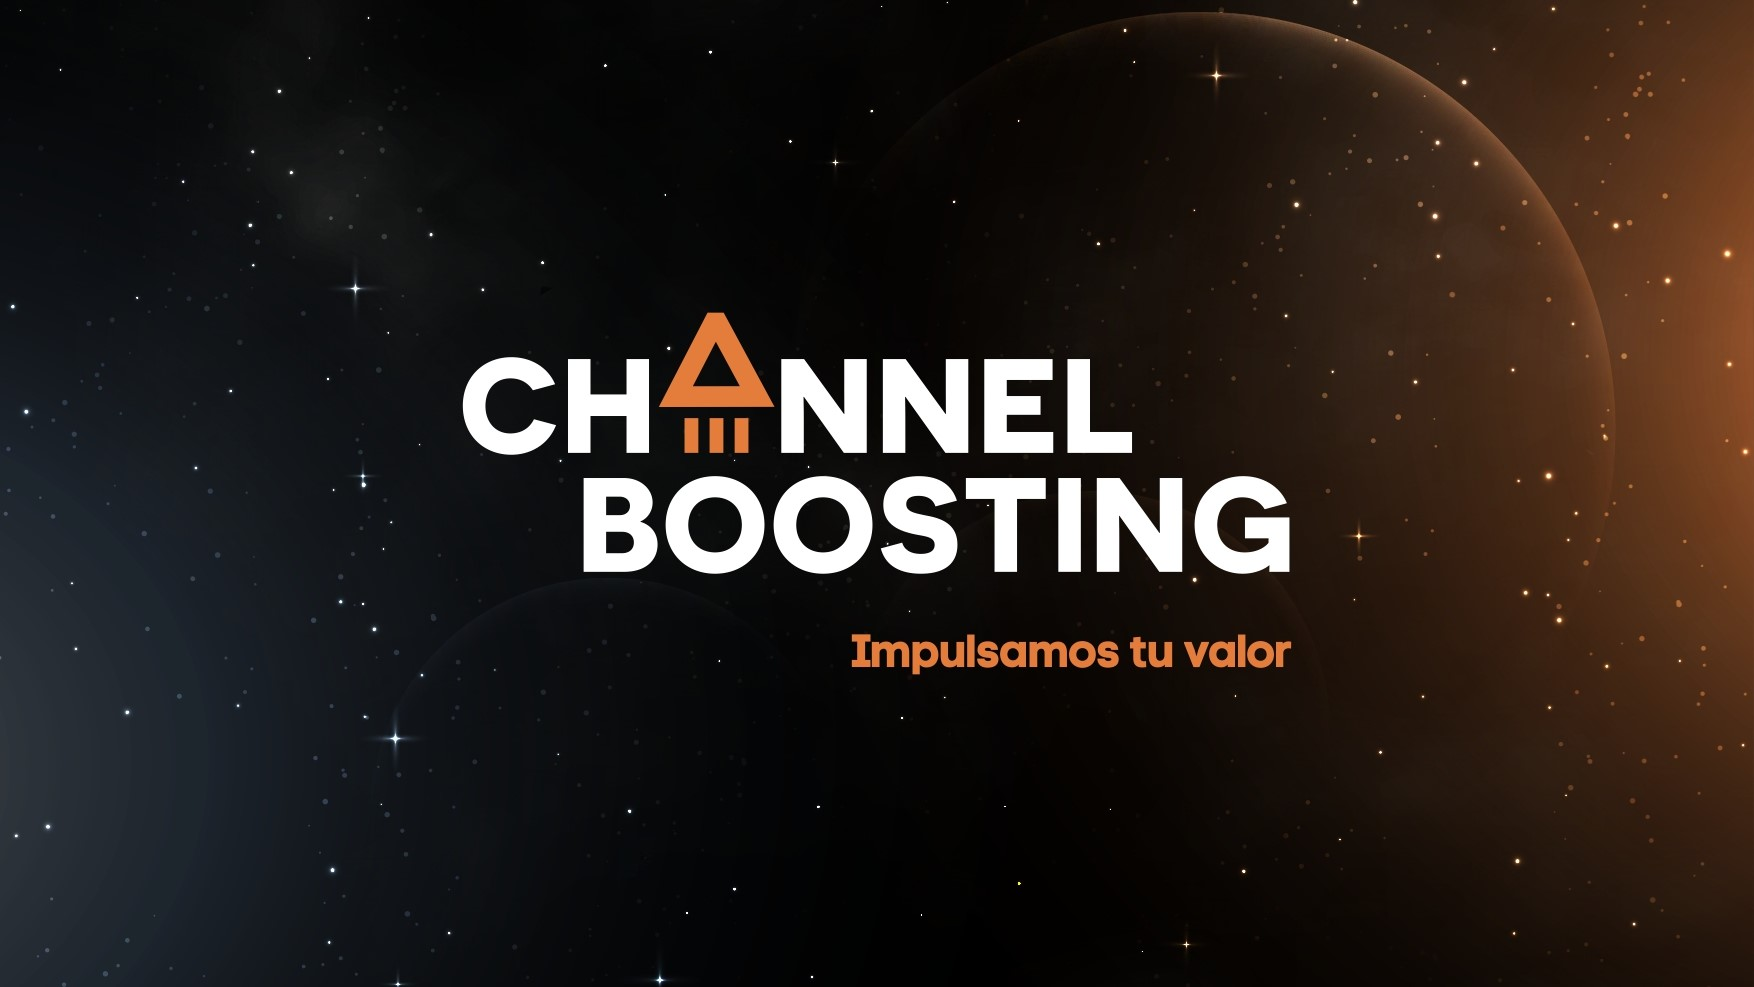 Channel Boosting – Impulsamos tu valor